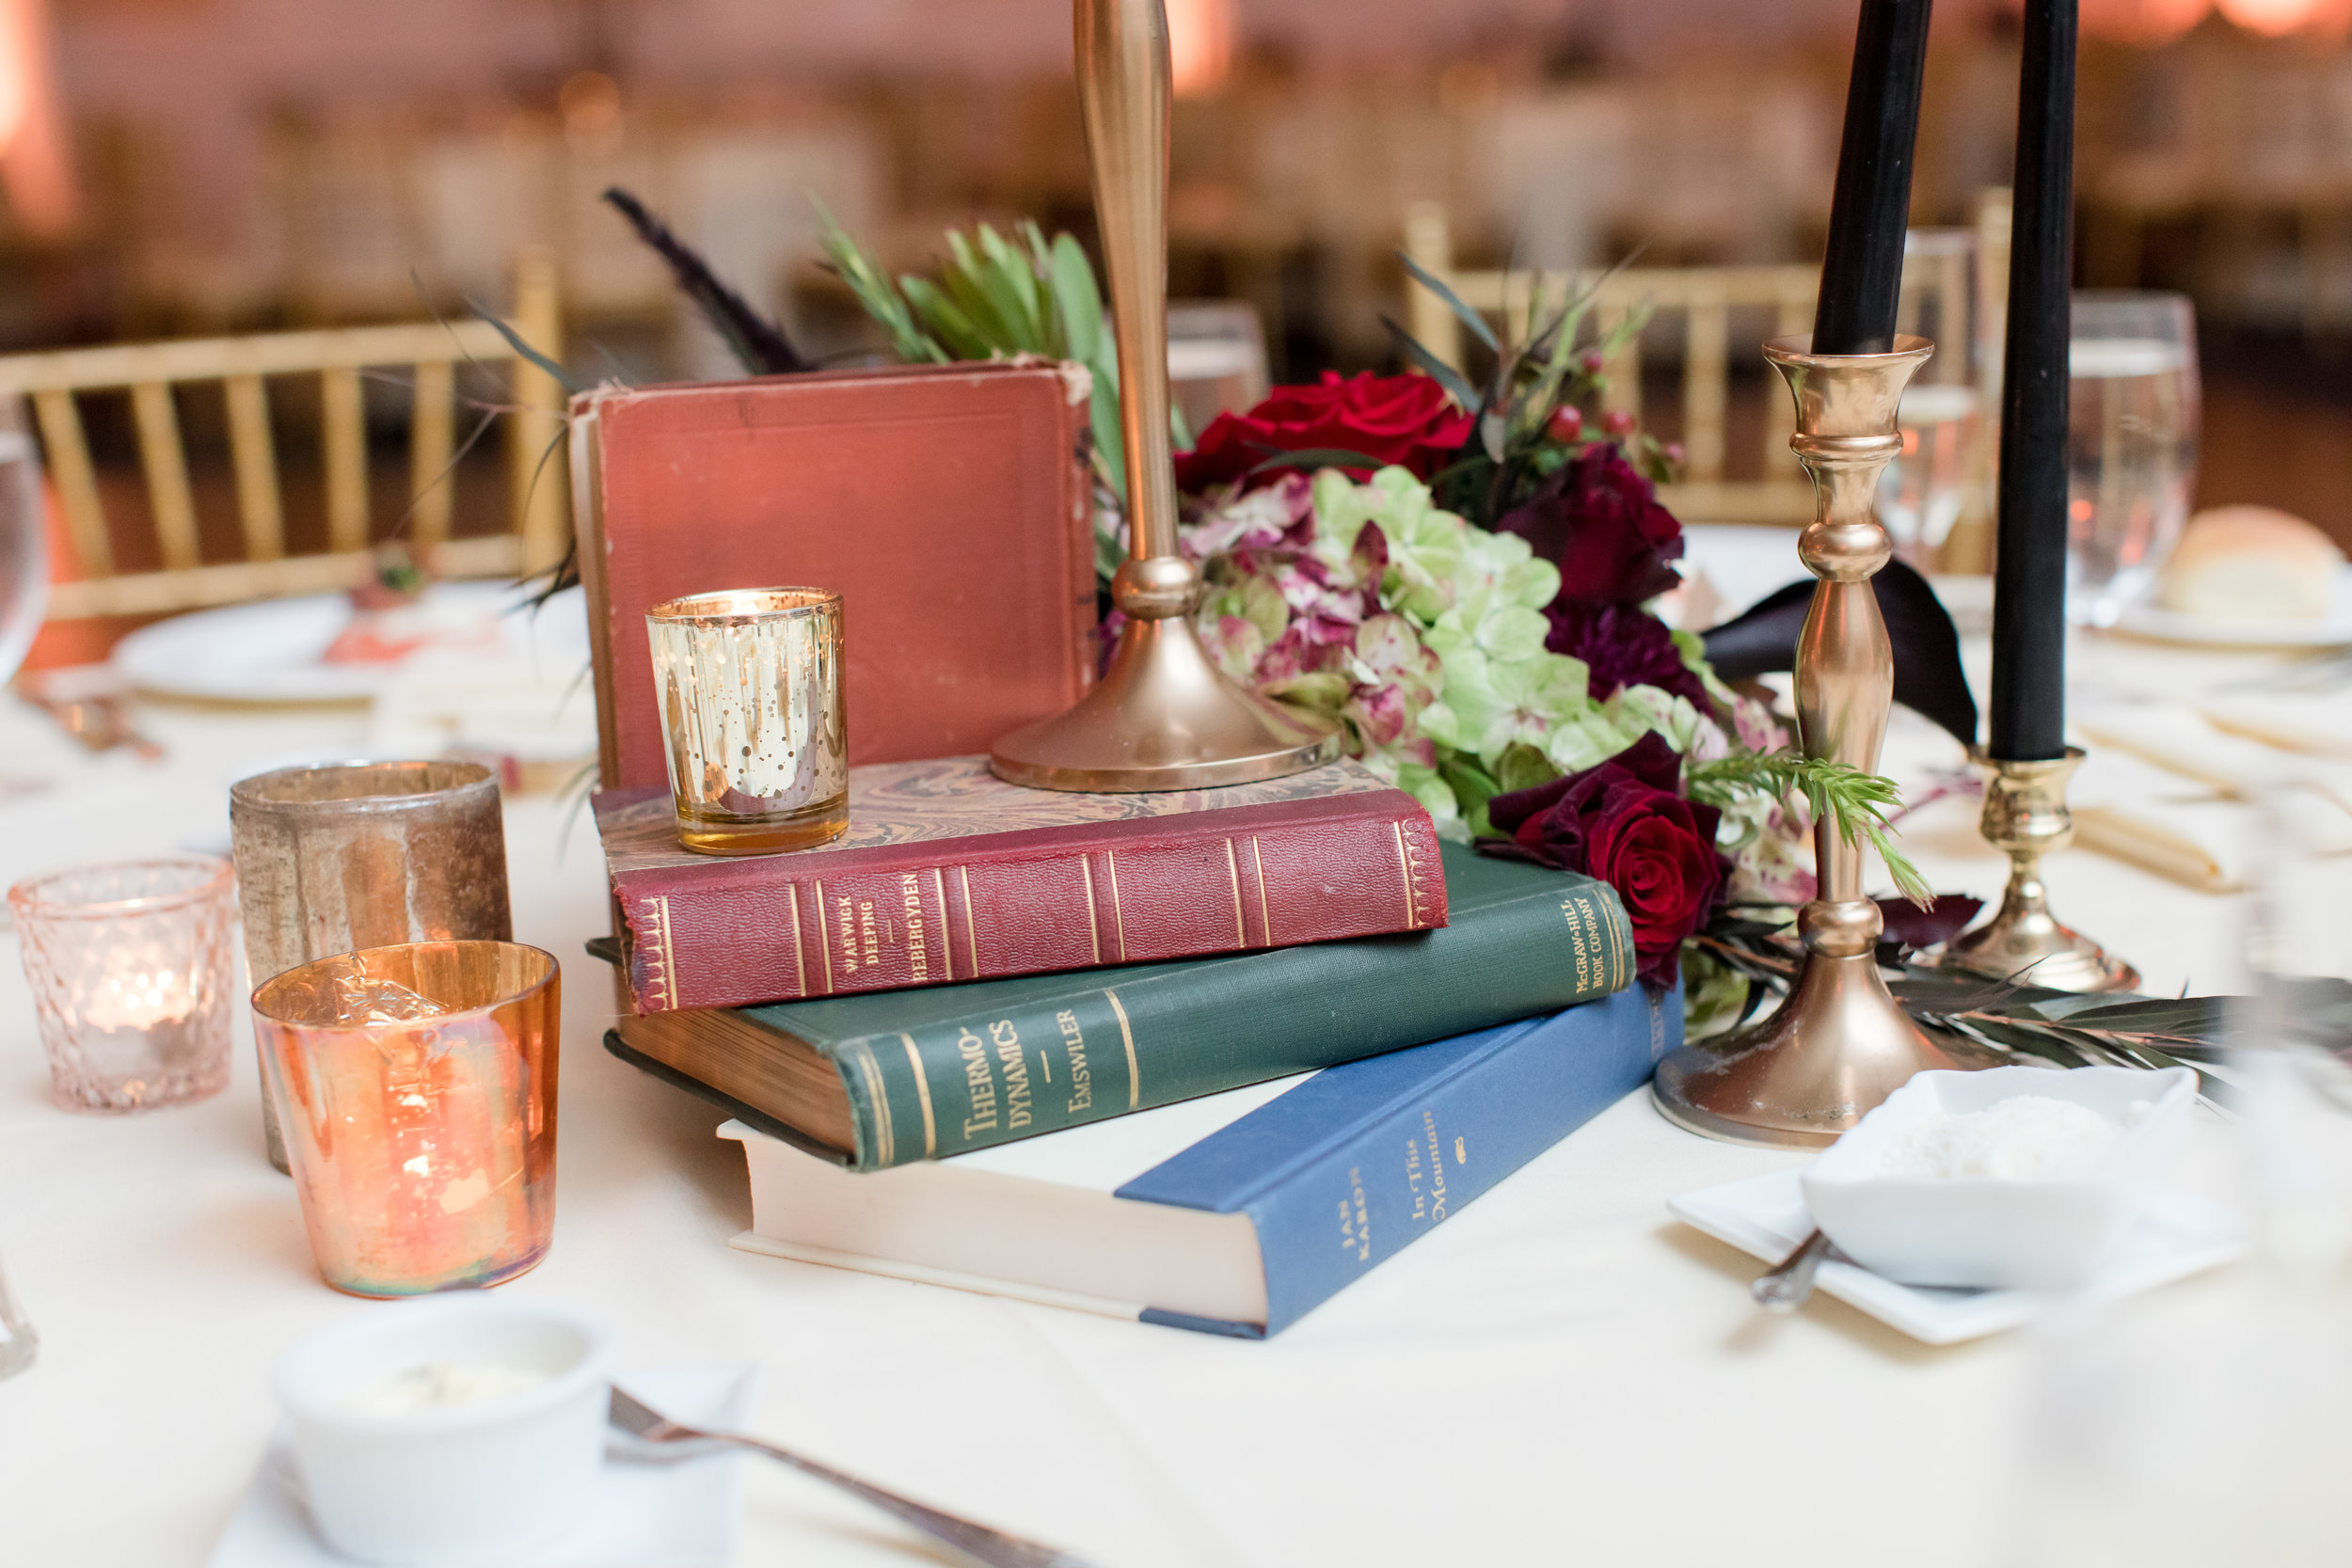 vintage book centerpieces with flowers and candles for library inspired fall wedding at buona sera palazzo